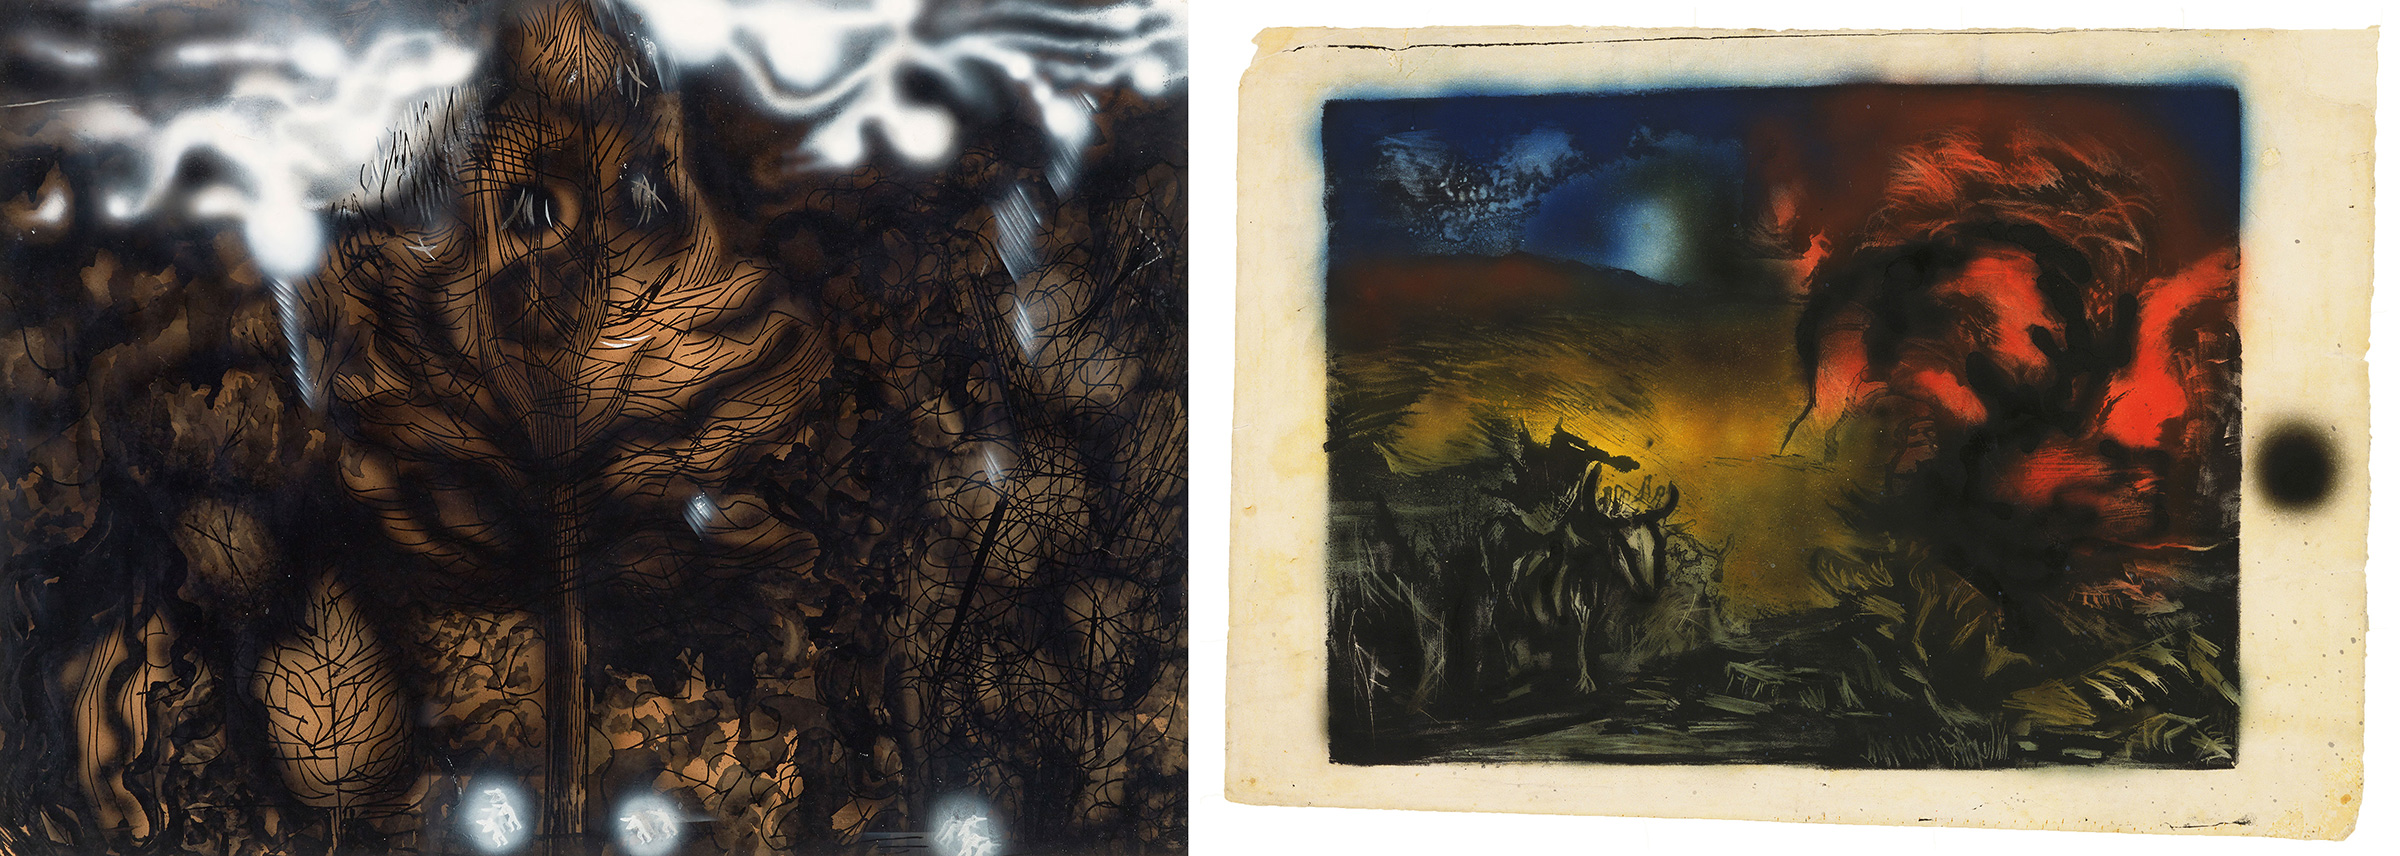 Left: David Alfaro Siqueiros, The Electric Forest, 1939; Right: Jackson Pollock, Landscape with Steer, 1936–37